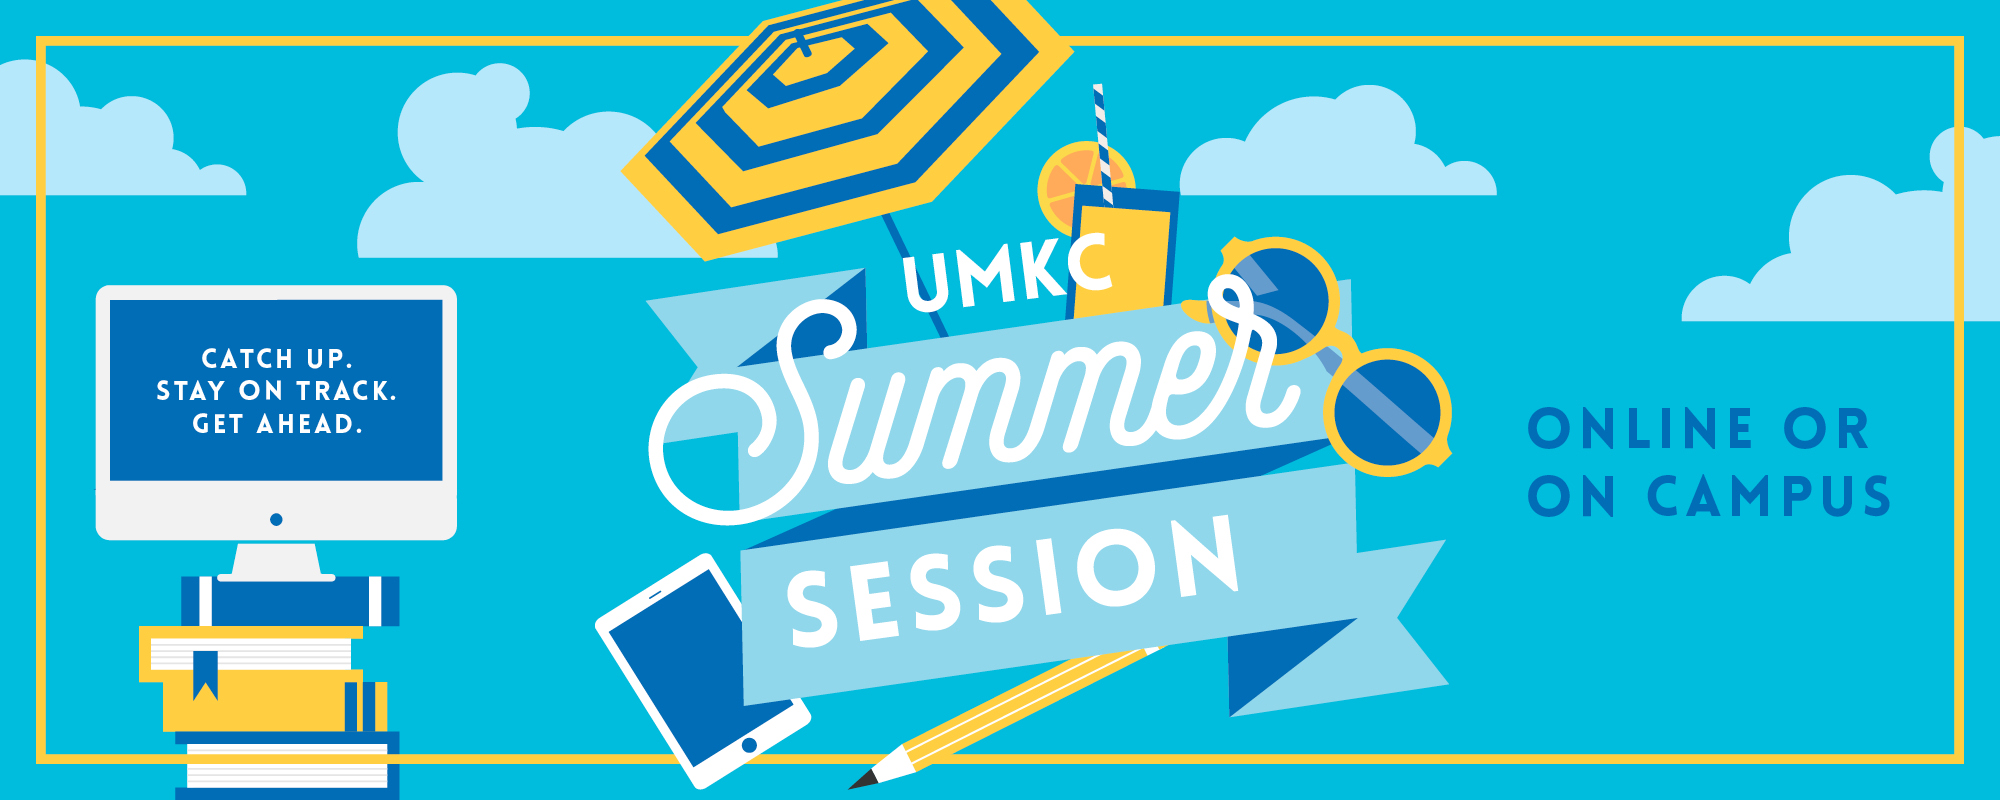 Illustration of computer screen, beach umbrella, sunglasses, etc. with text: Catch up. Stay on track. Get Ahead. UMKC Summer Session. Online or on campus.